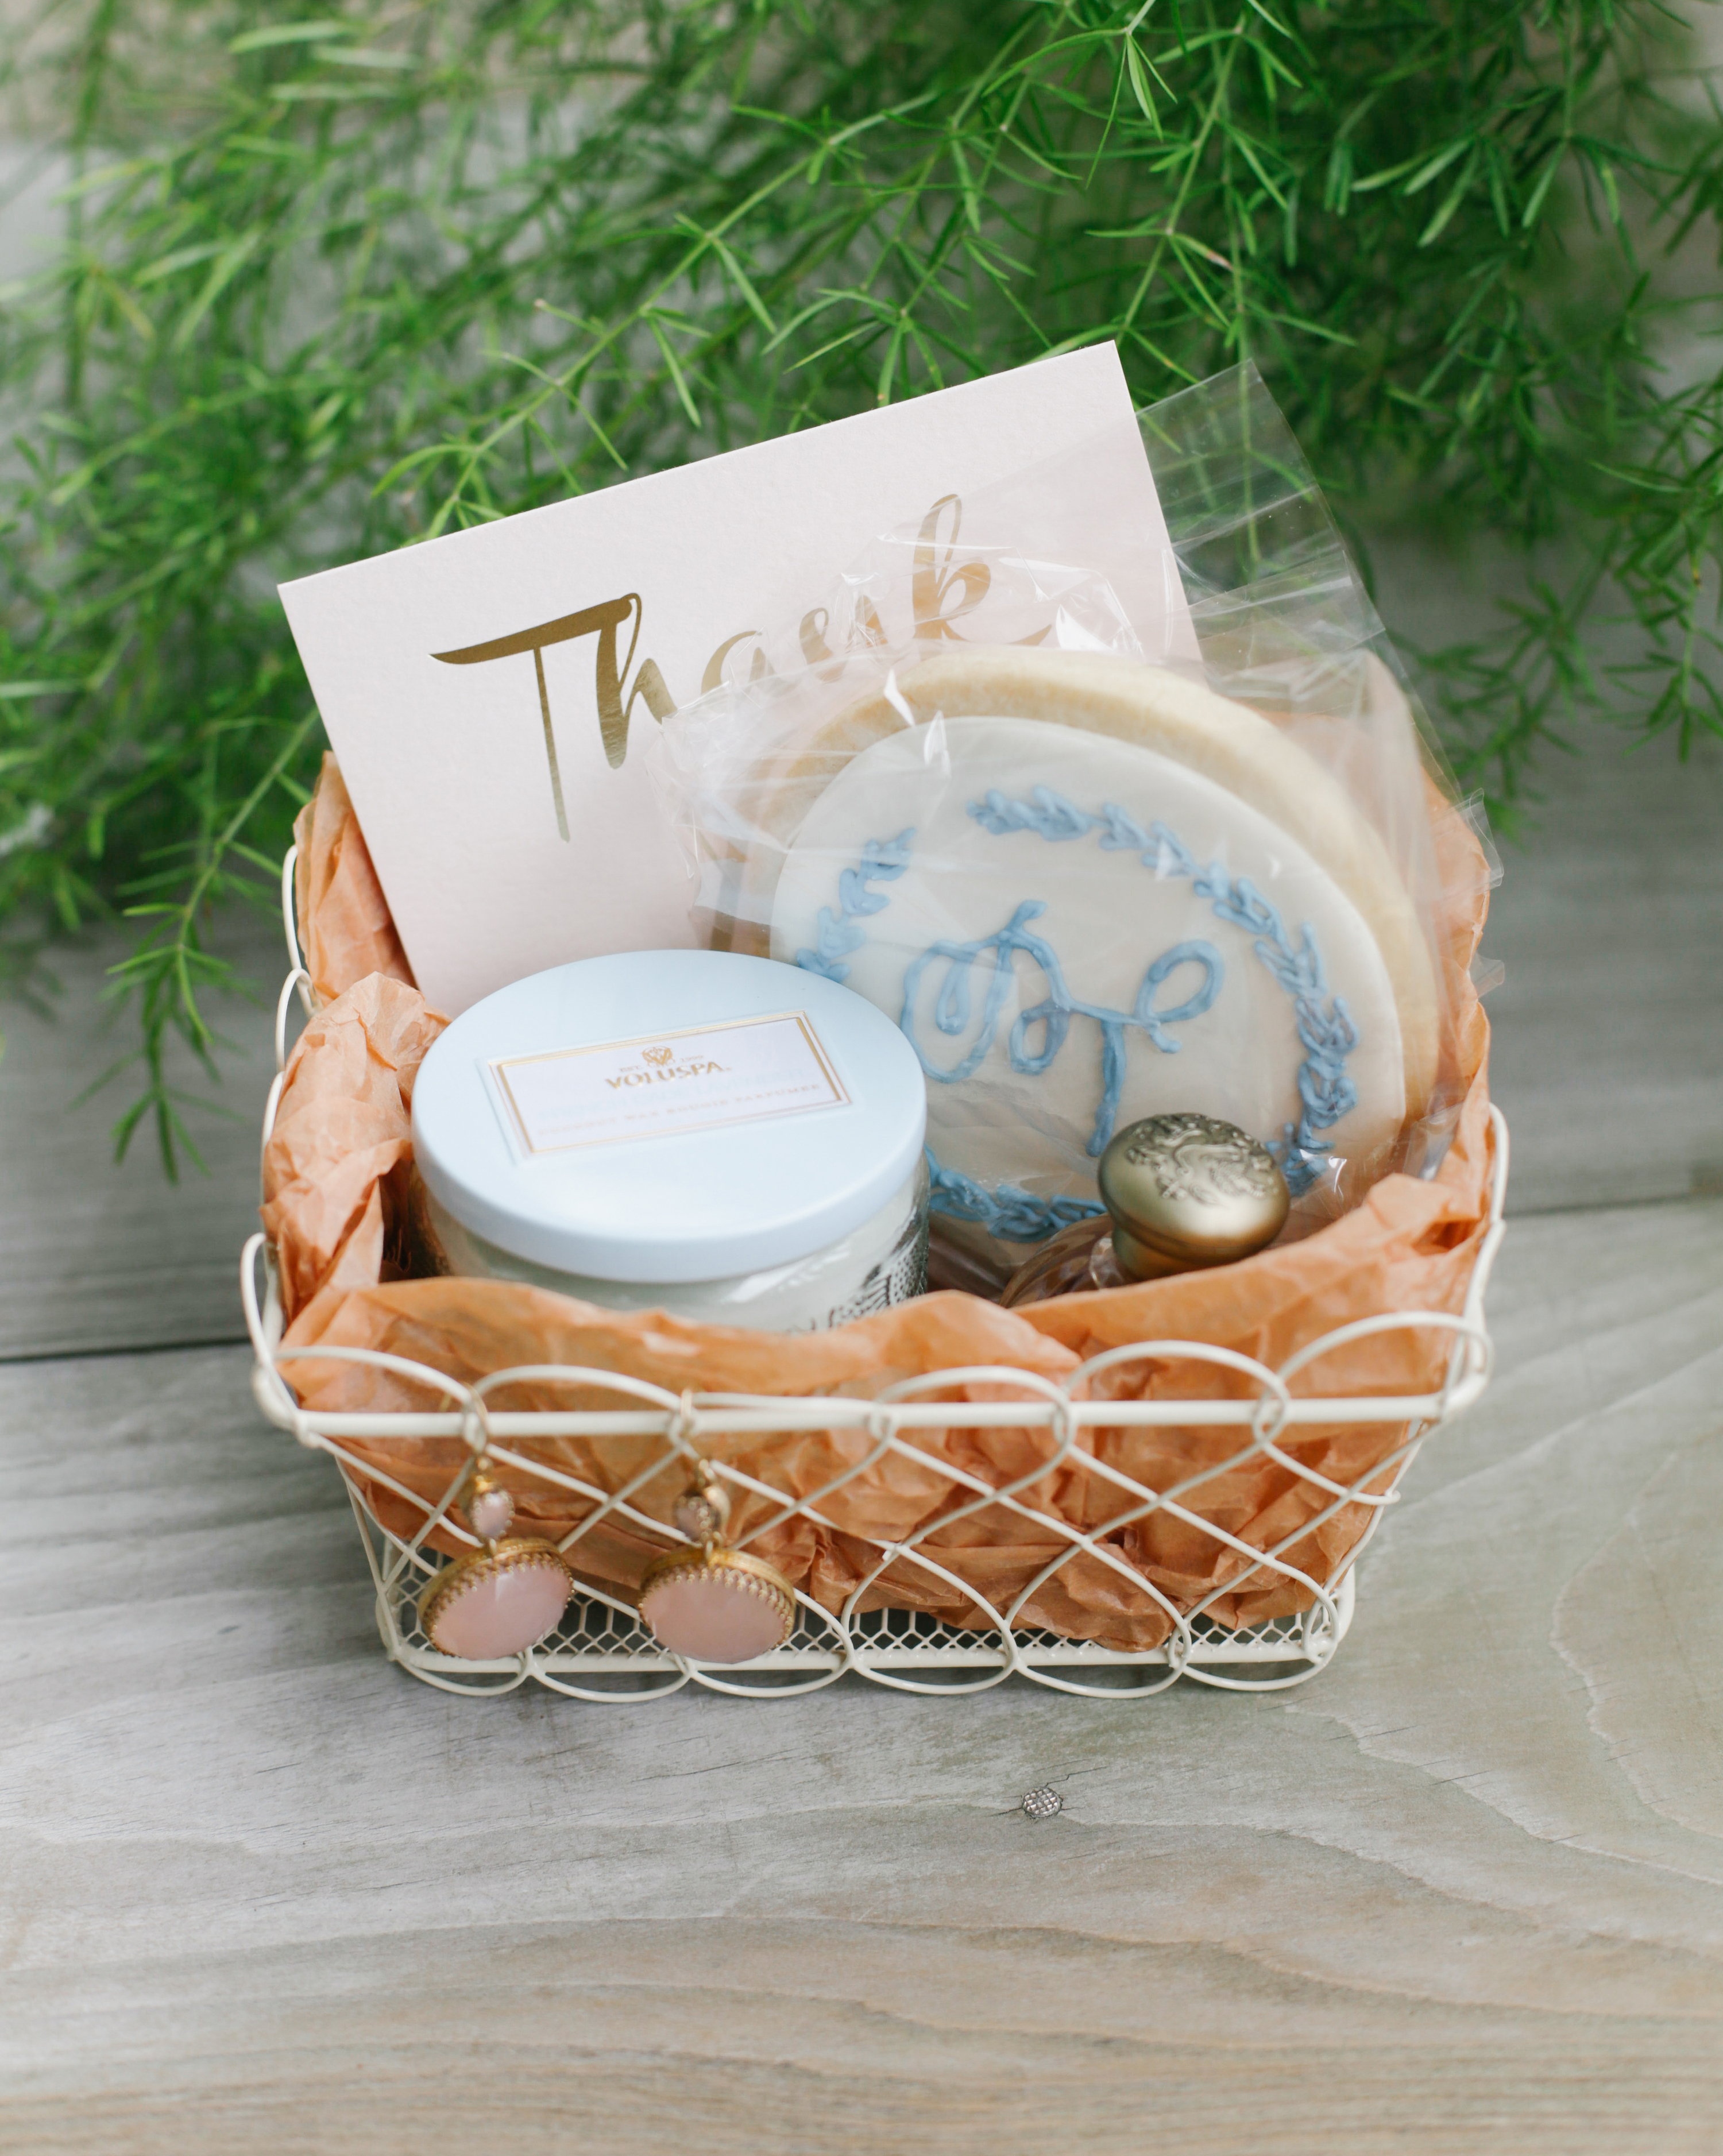 destiny-taylor-wedding-favor-25-s112347-1115.jpg